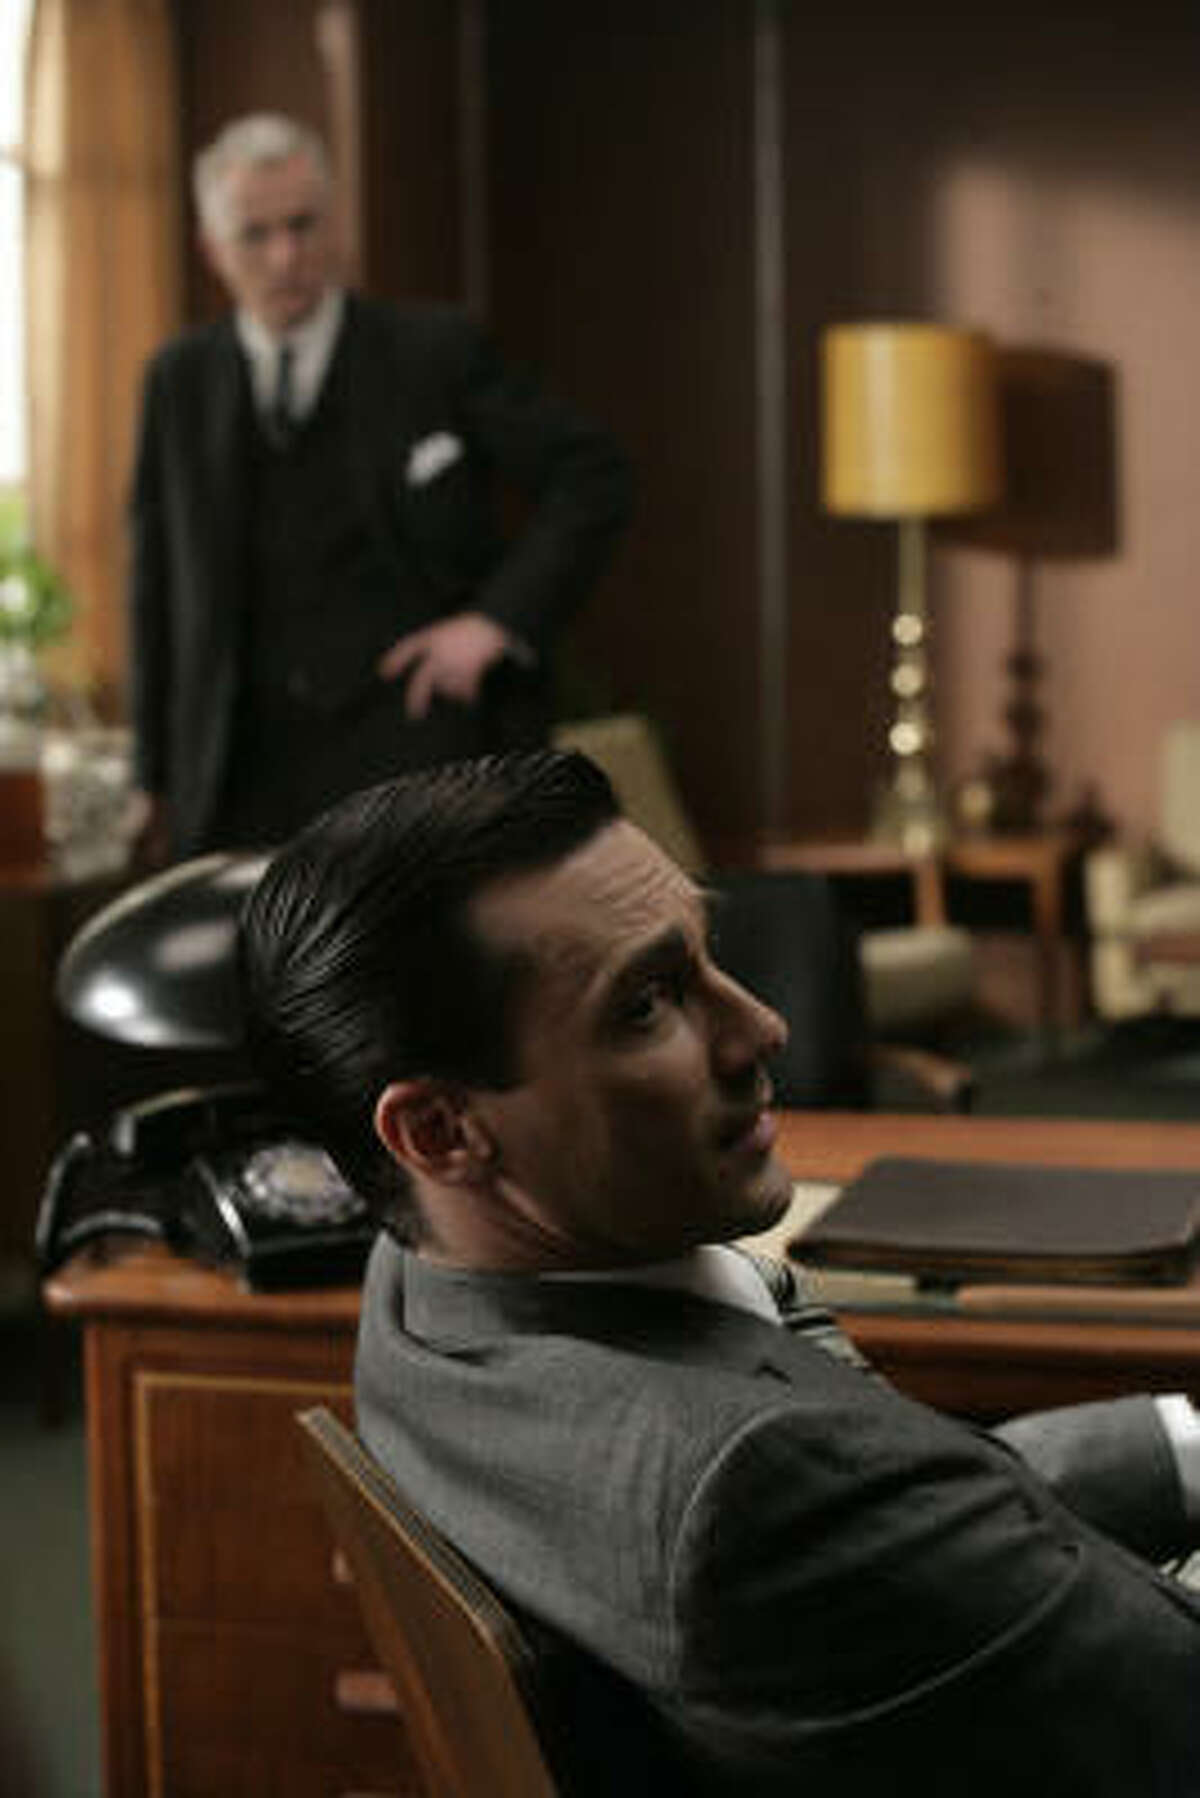 Don Draper (Jon Hamm) is an ad exec. And a man's man. He drinks, smokes and slays the ladies. He's also growing more and more conflicted.